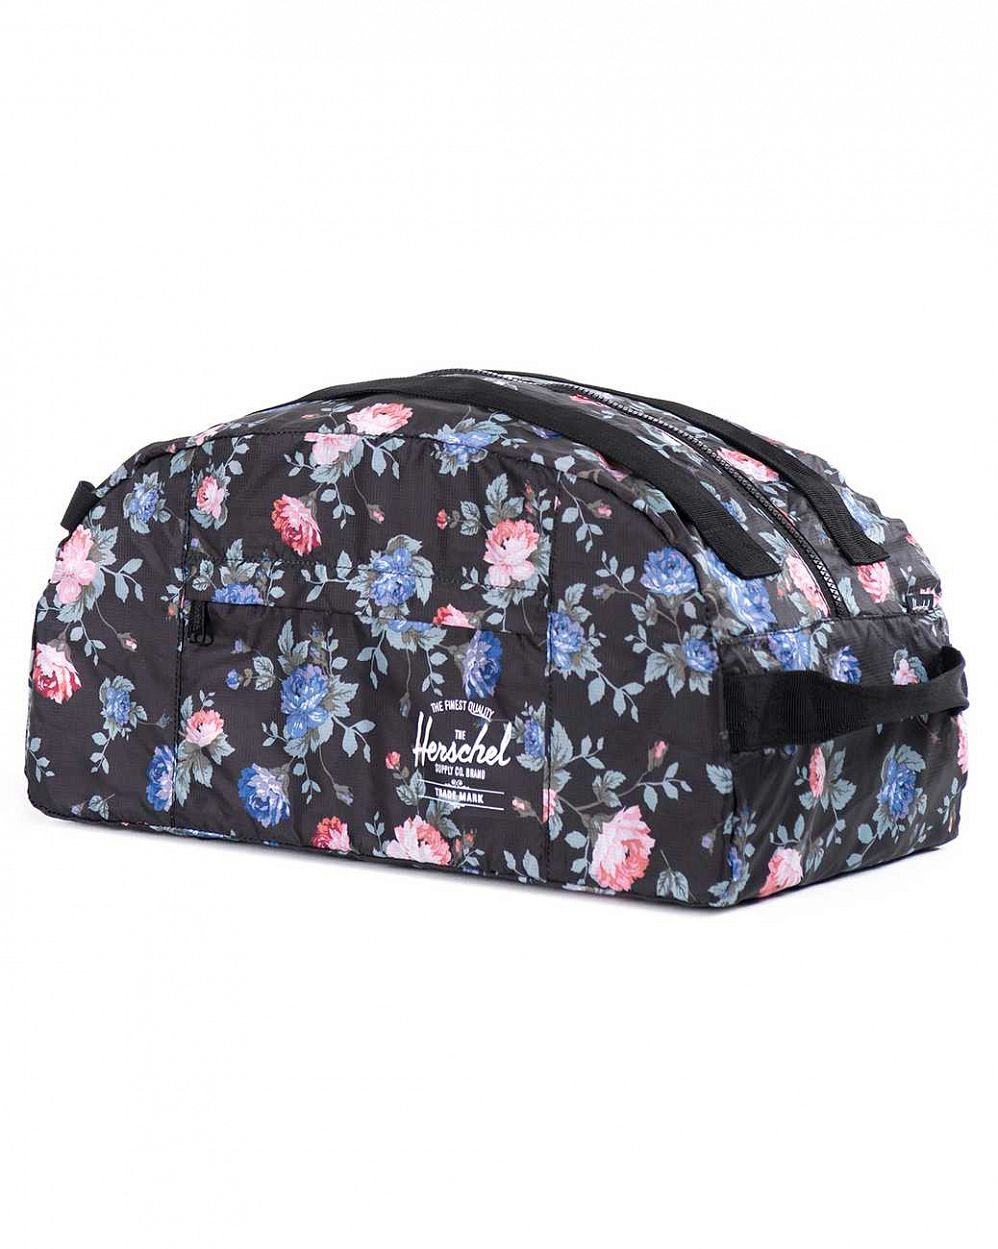 Сумка спортивная Herschel Packable Journey Black Floral цена в Москве